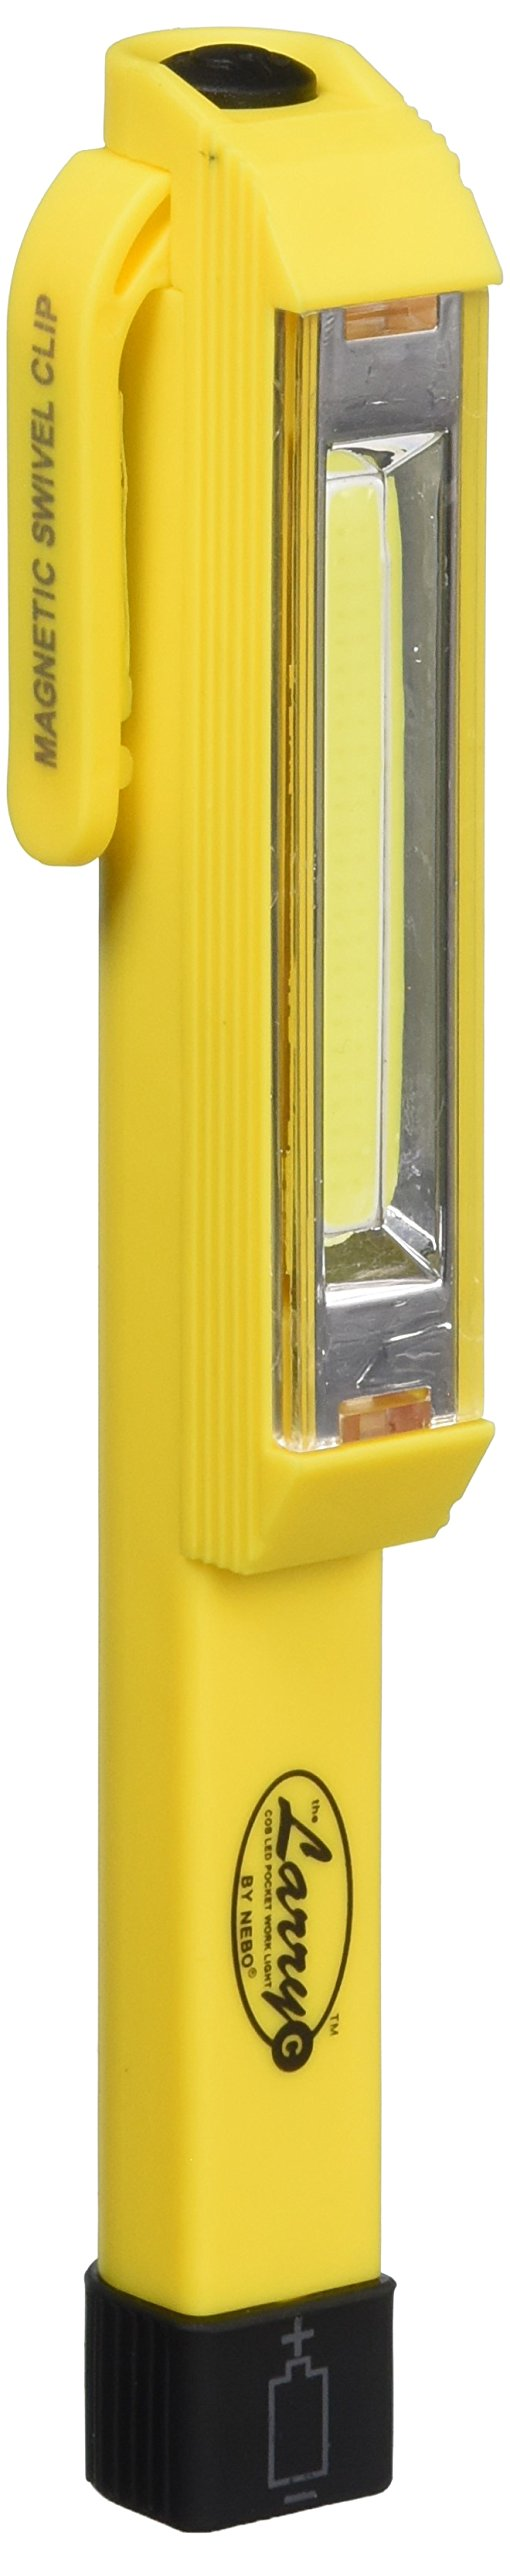 Nebo Larry C Power C-O-B LED Work Light (Set of 3-Yellow) Brighter Than Ever, 170 Lumens of Intense Light